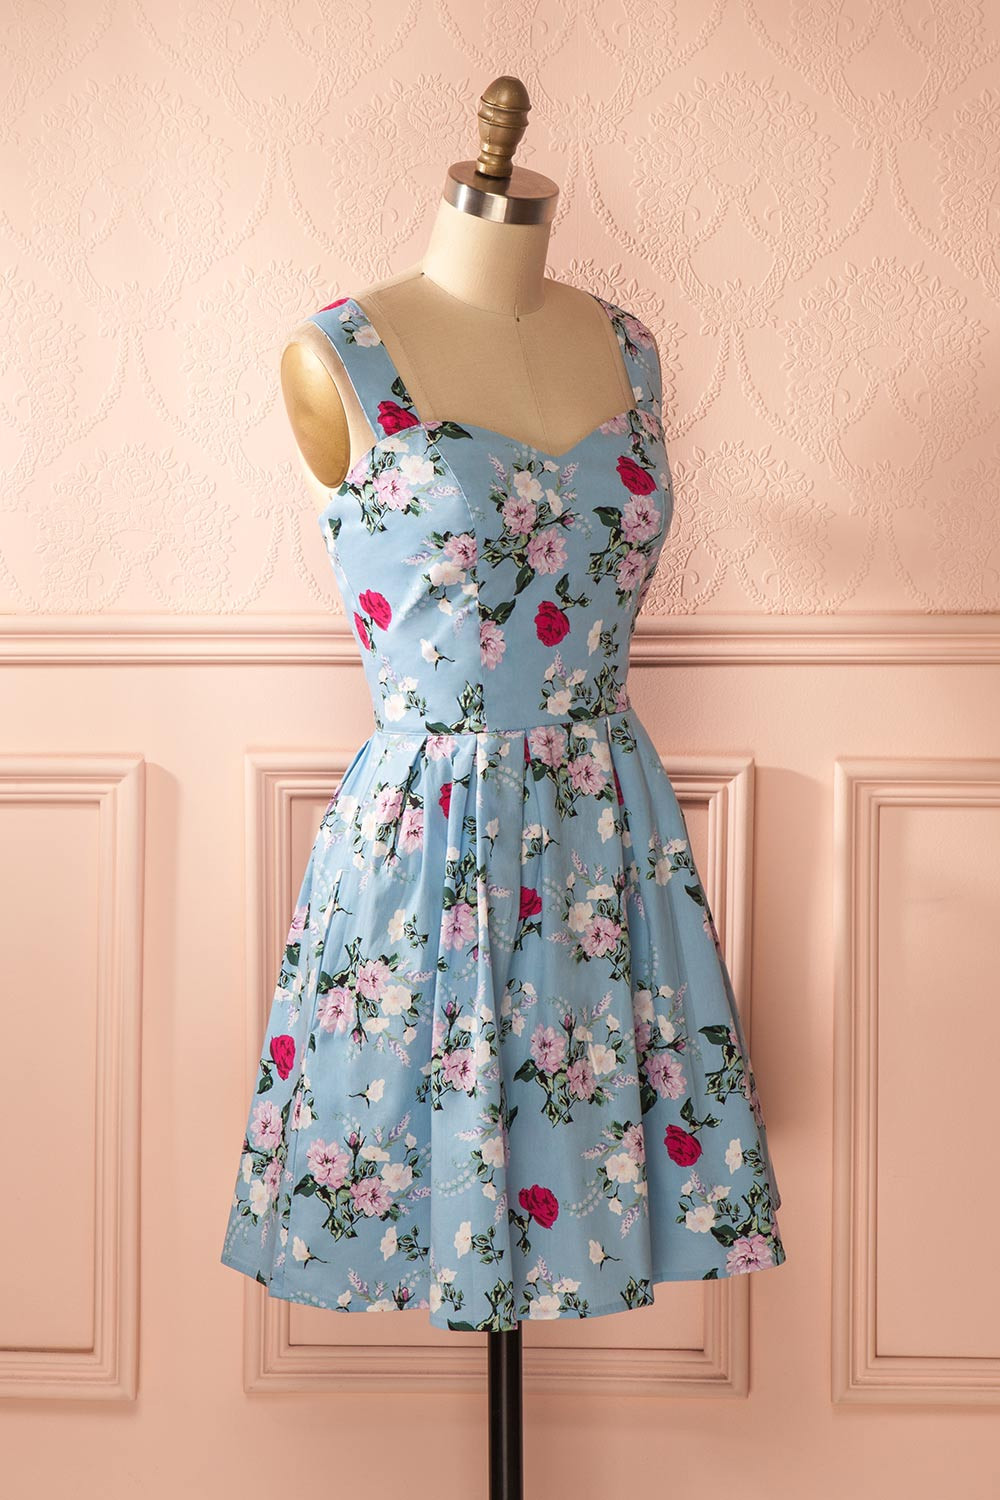 b2e910199c8 Lewande A Line Floral Print Short Homecoming Dress for Graduation College  Sweetheart Pleated Cute Bridesmaid Quinceanera Gown-in Bridesmaid Dresses  from ...